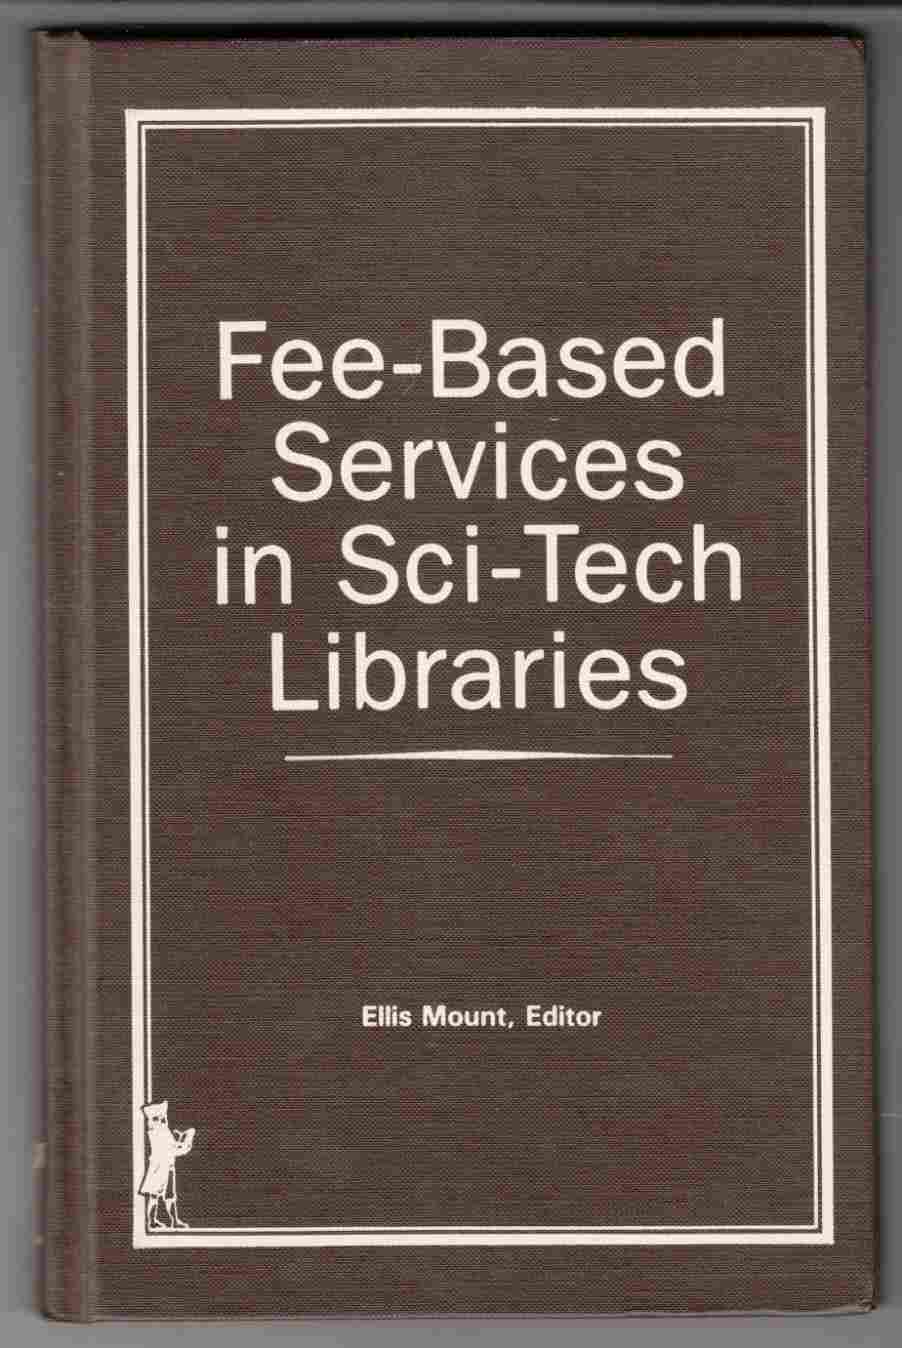 Image for Fee-Based Services in Sci-Tech Libraries